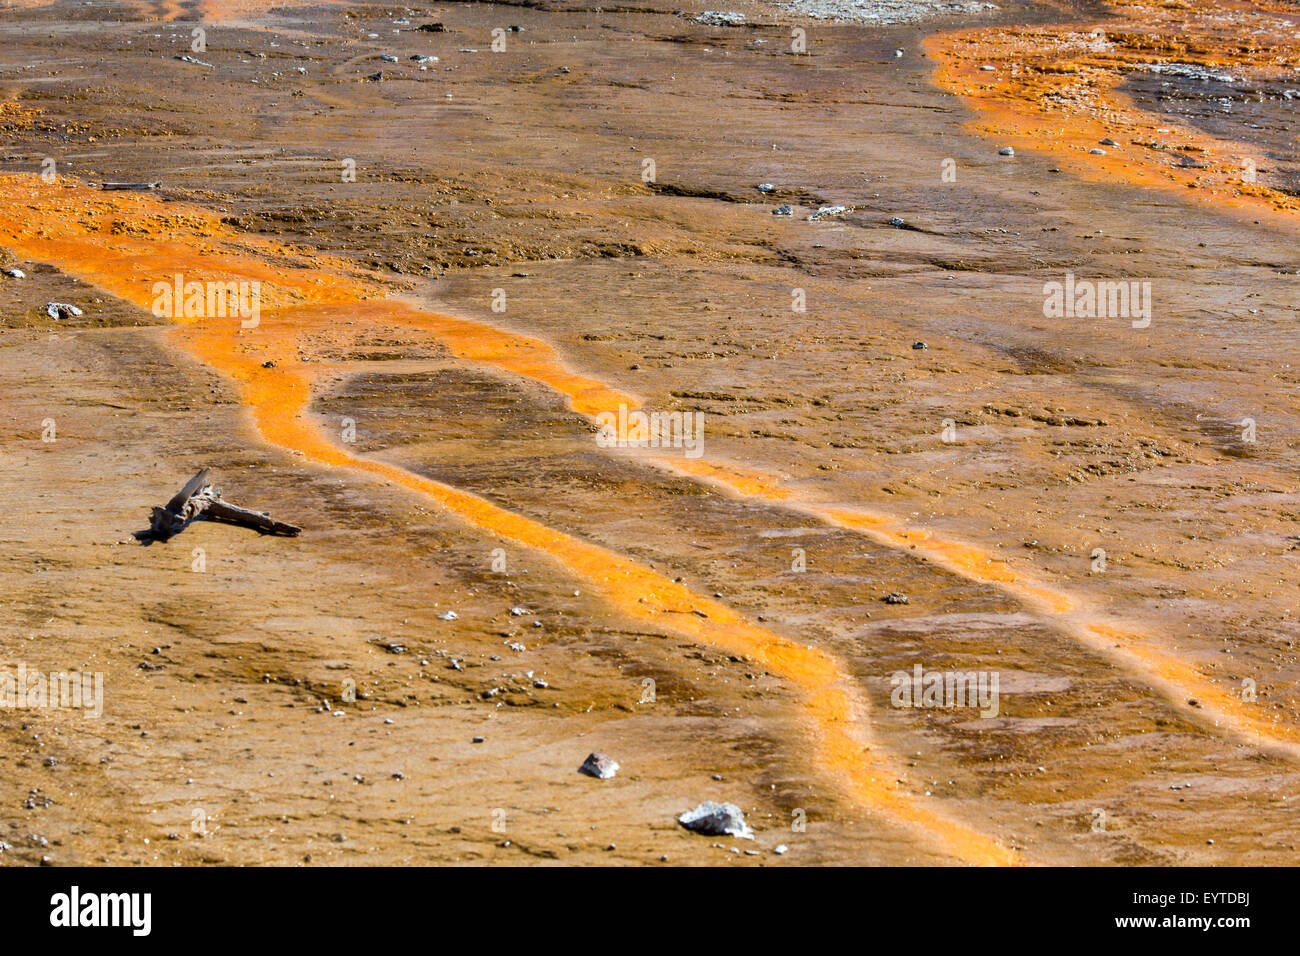 Yellowstone National Park, Wyoming - Runoff from hot springs in Yellowstone's Lower Geyser Basin. - Stock Image